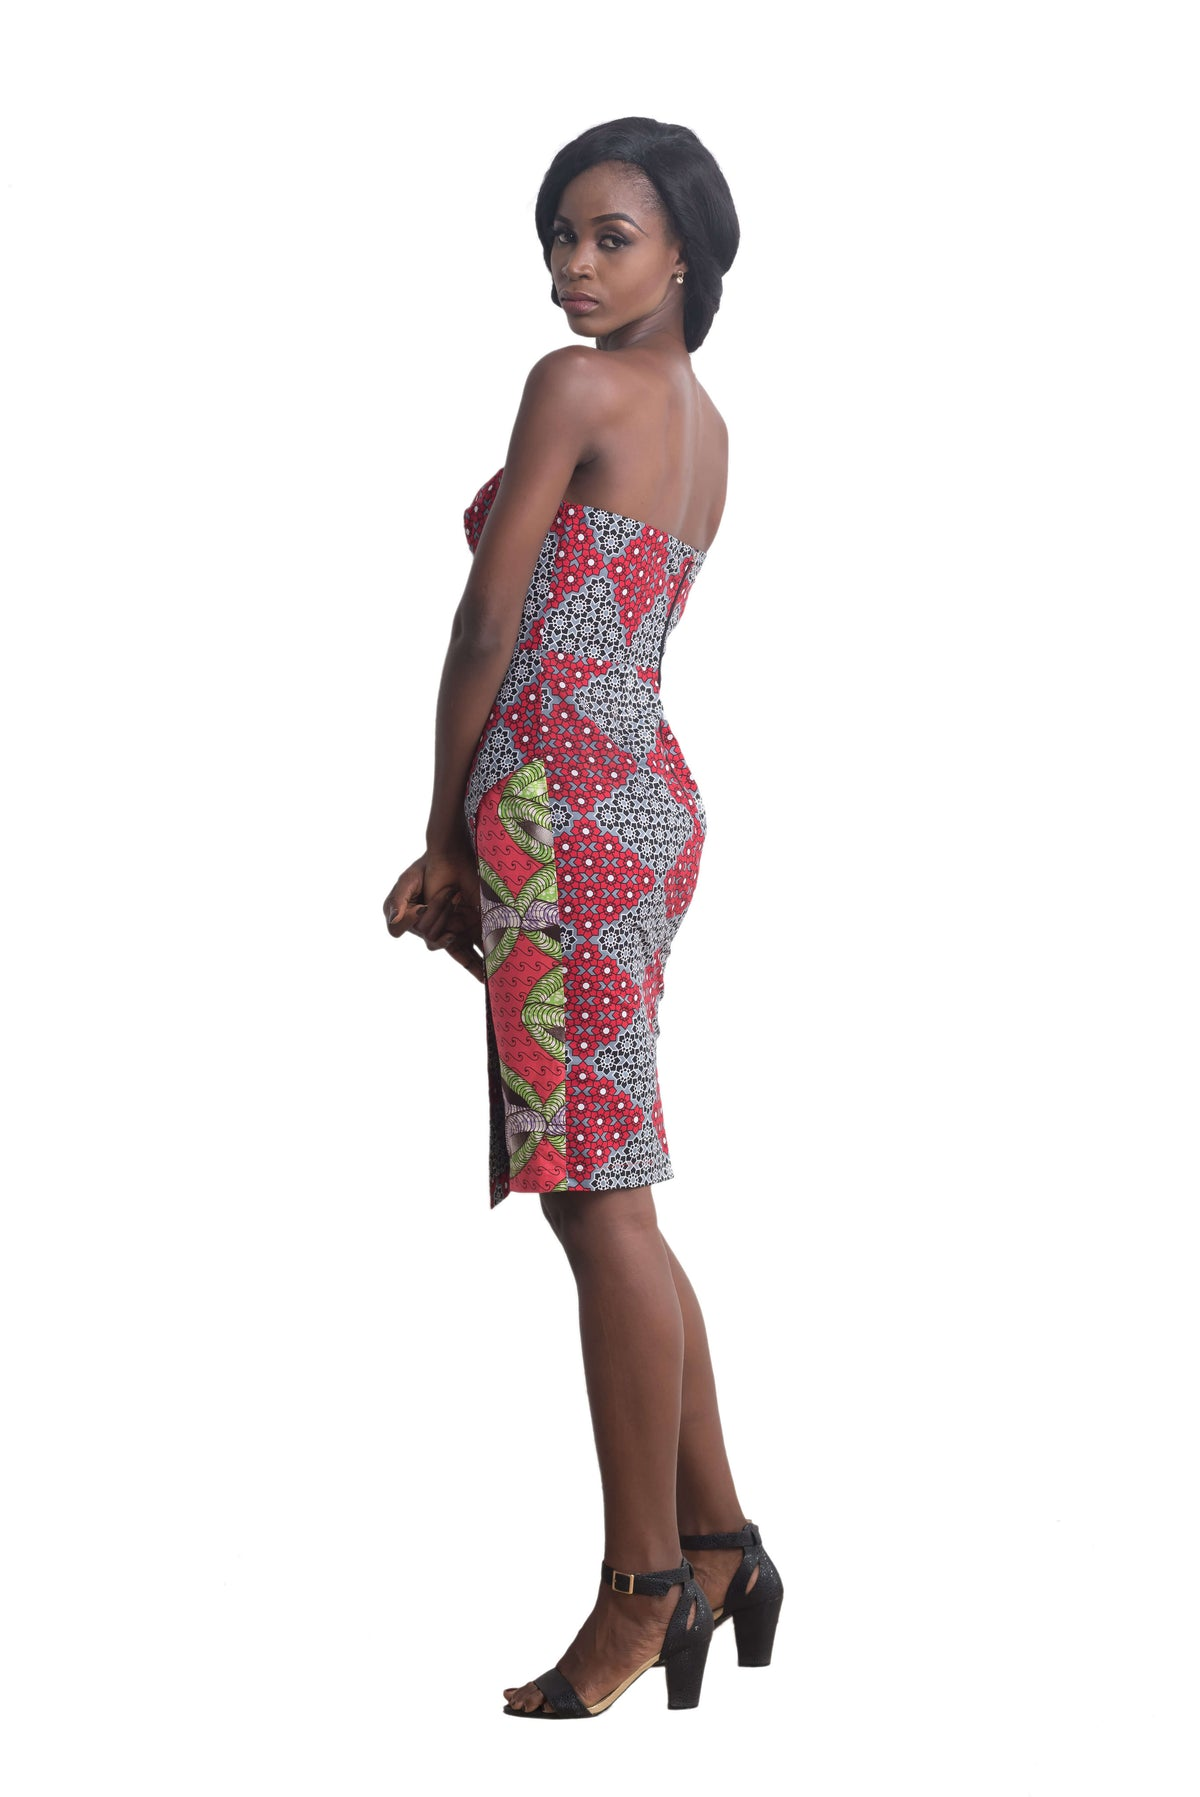 Women wearing Ankarage Women African Print Sisi Eko Faux Wrap Dress (Red on Pink) Ankara Dress Side View